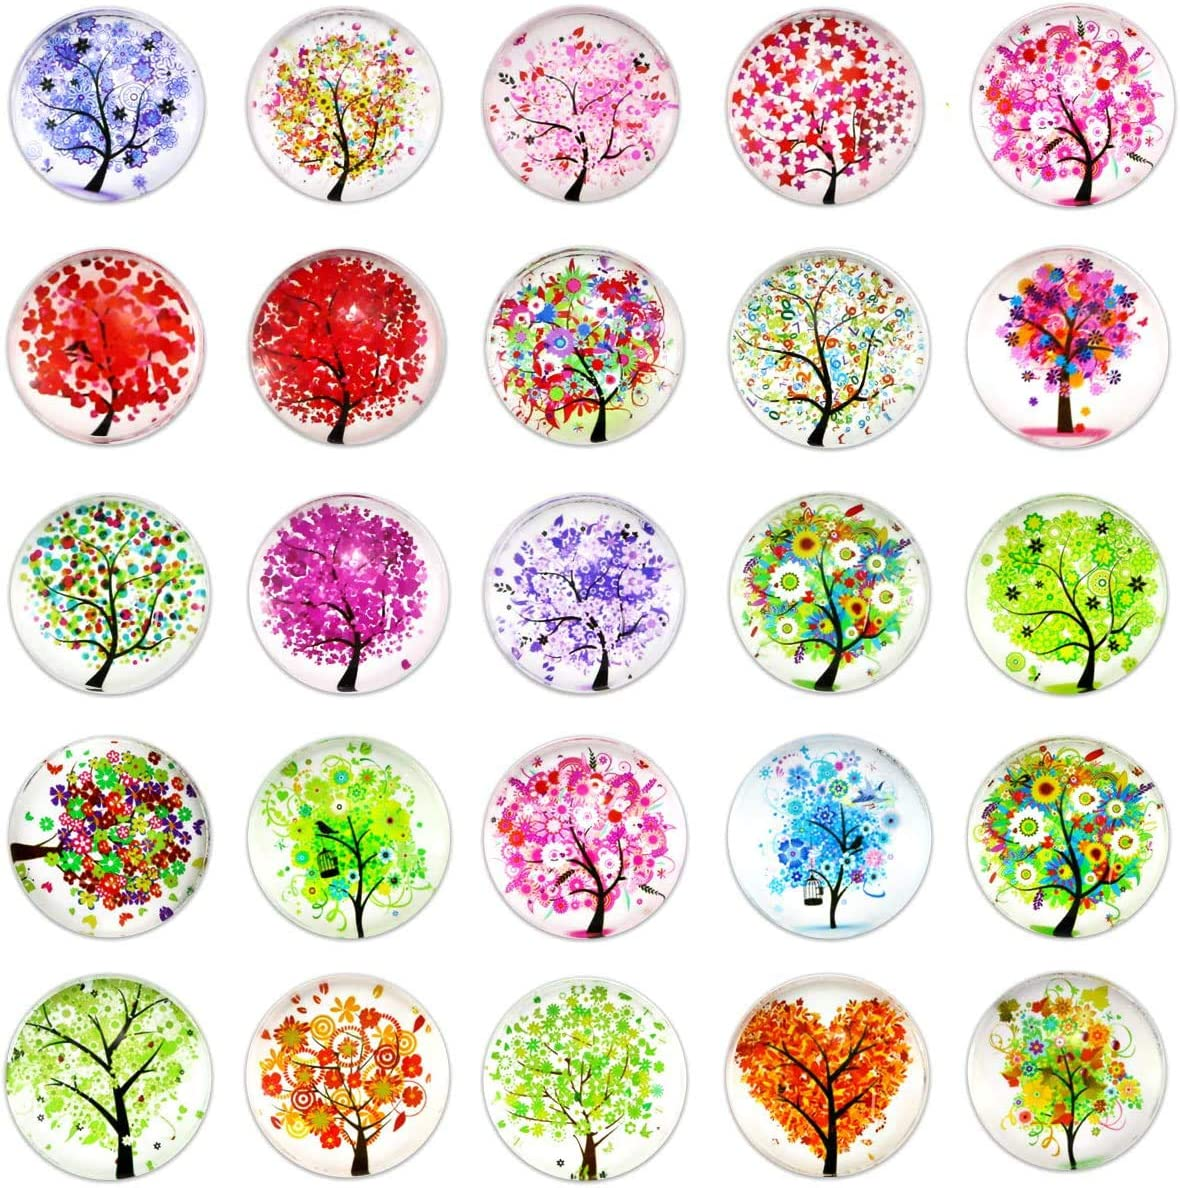 BcPowr 24Pcs Tree Refrigerator Magnets,Beautiful Glass Refrigerator Magnets Fridge Stickers for Office Cabinets Whiteboards Calendar Magnet, Whiteboard Magnets Tree of Life Decorative Photo Abstract